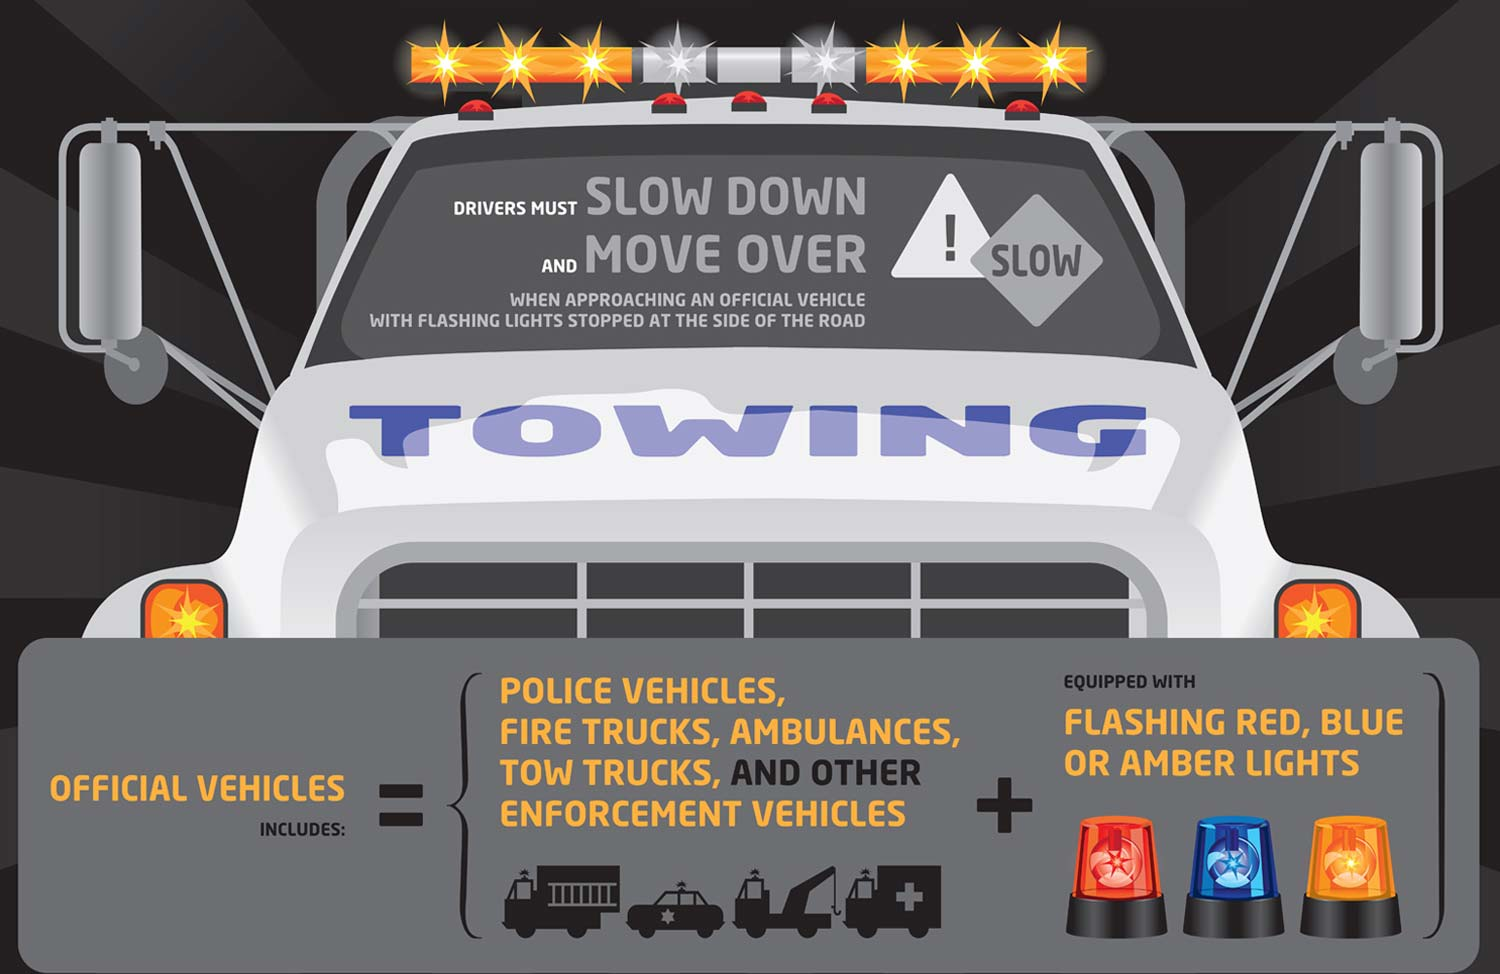 Slow Down and Move Over sign